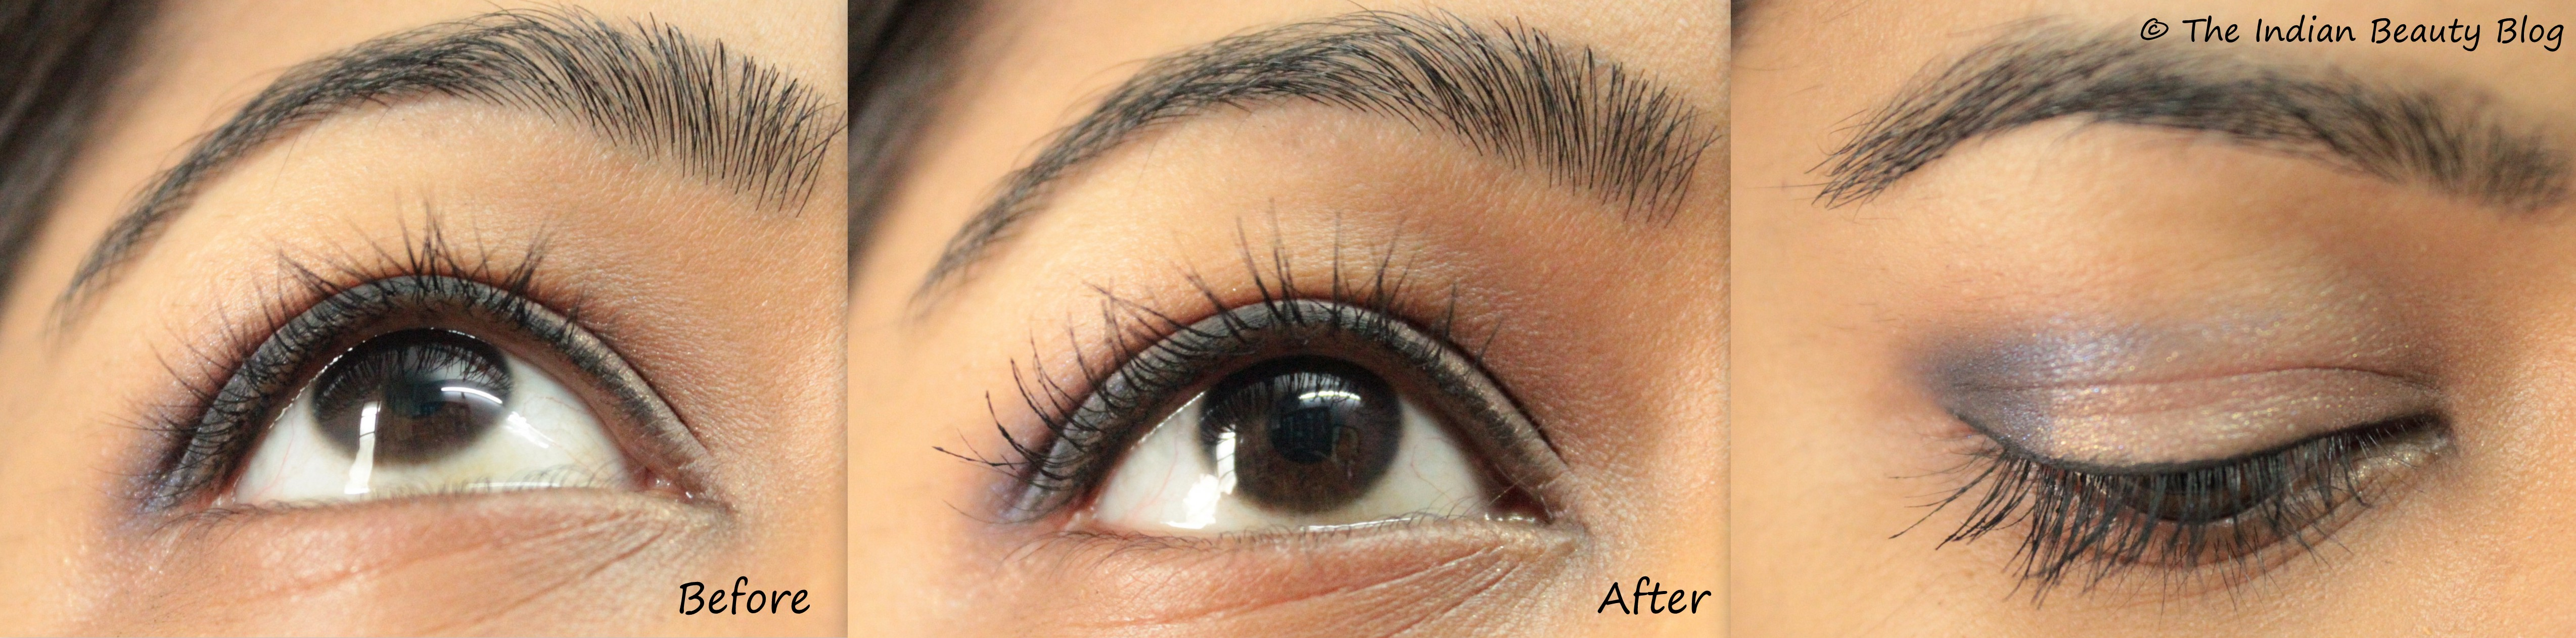 ae389aaf964 Clinique High Impact Mascara- Review,swatch, EOTD - The Indian ...